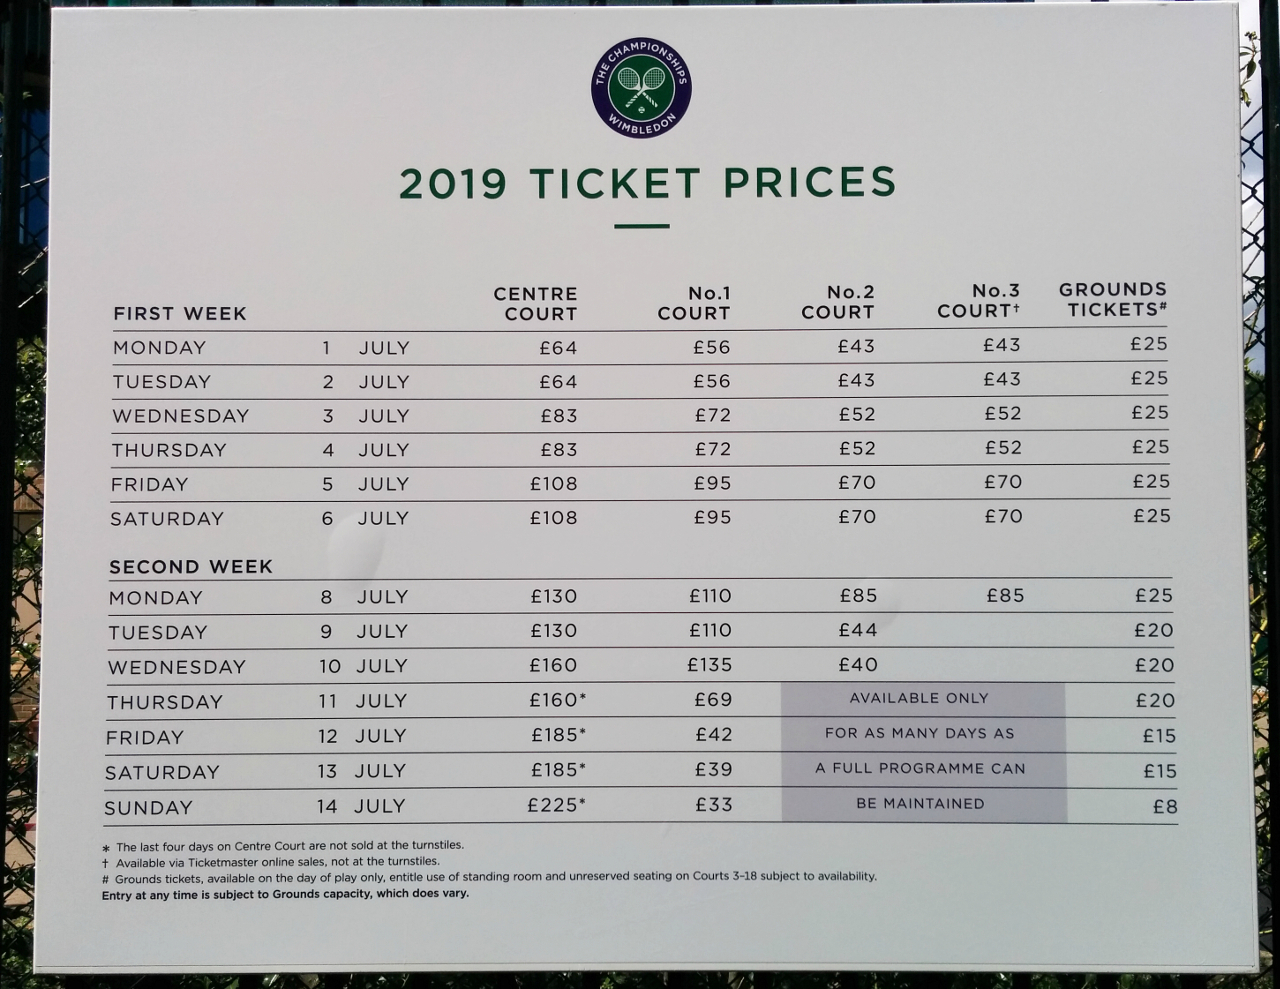 Ticket prices for the 2019 Championships